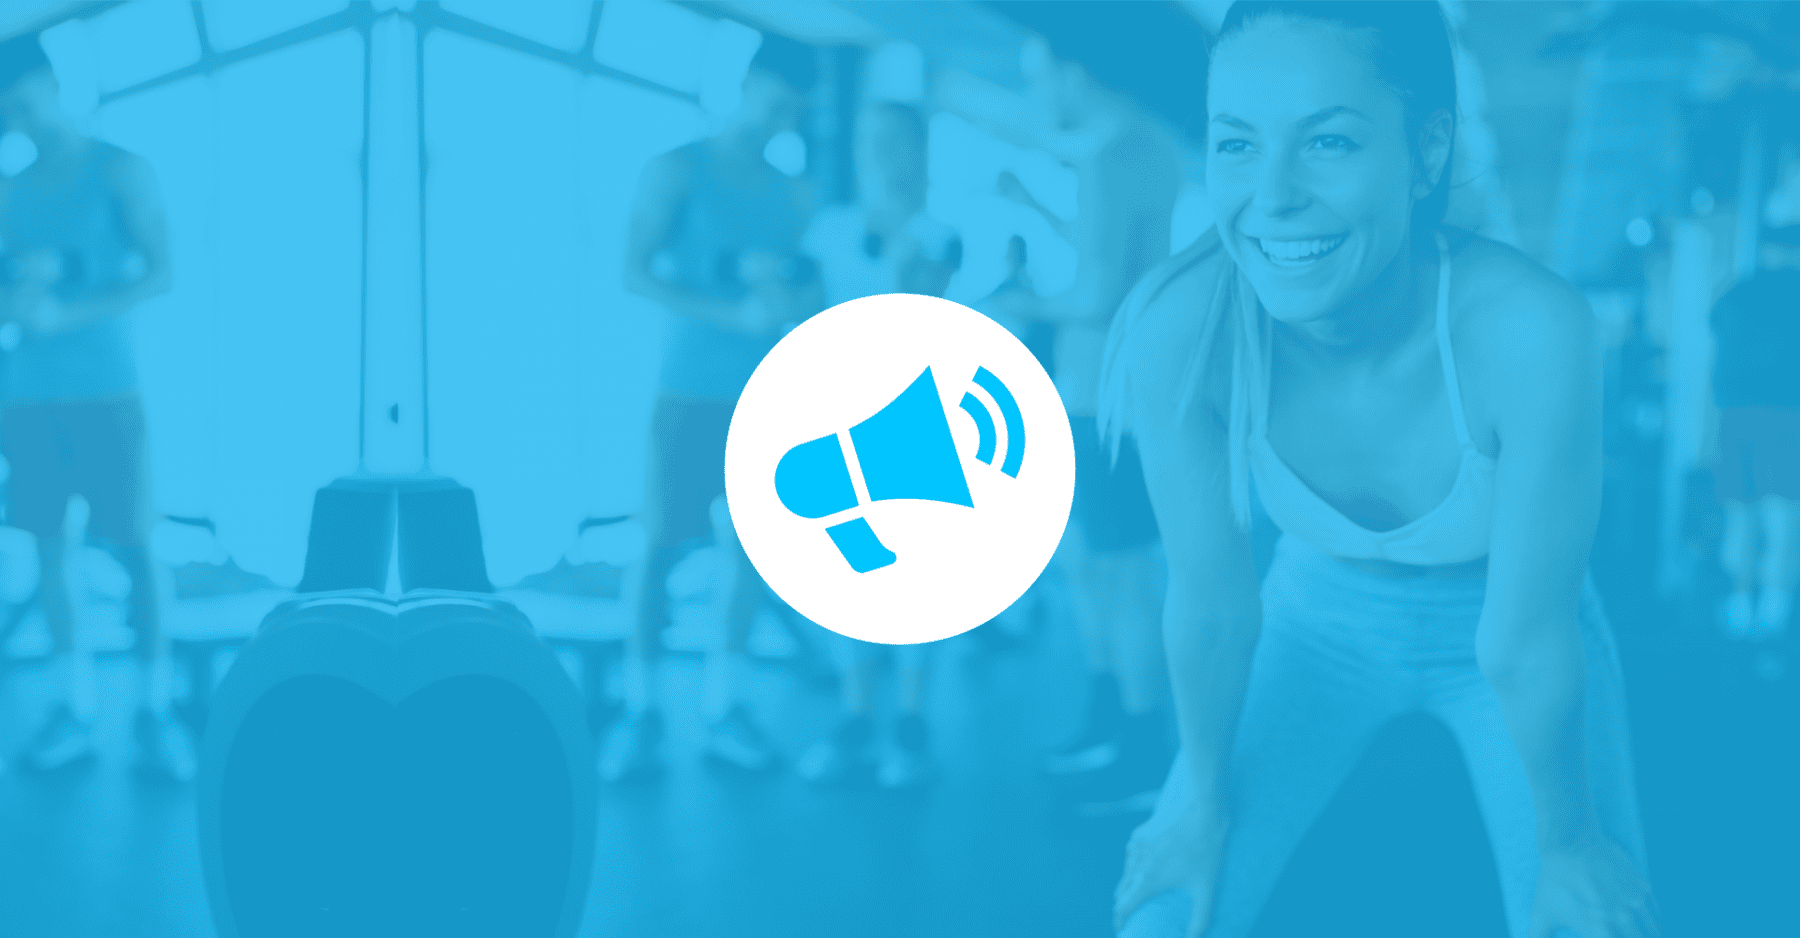 10 Killer Marketing Ideas For Your Gym To Drive Membership Sales by LEADLION a Health Club Marketing Agency.